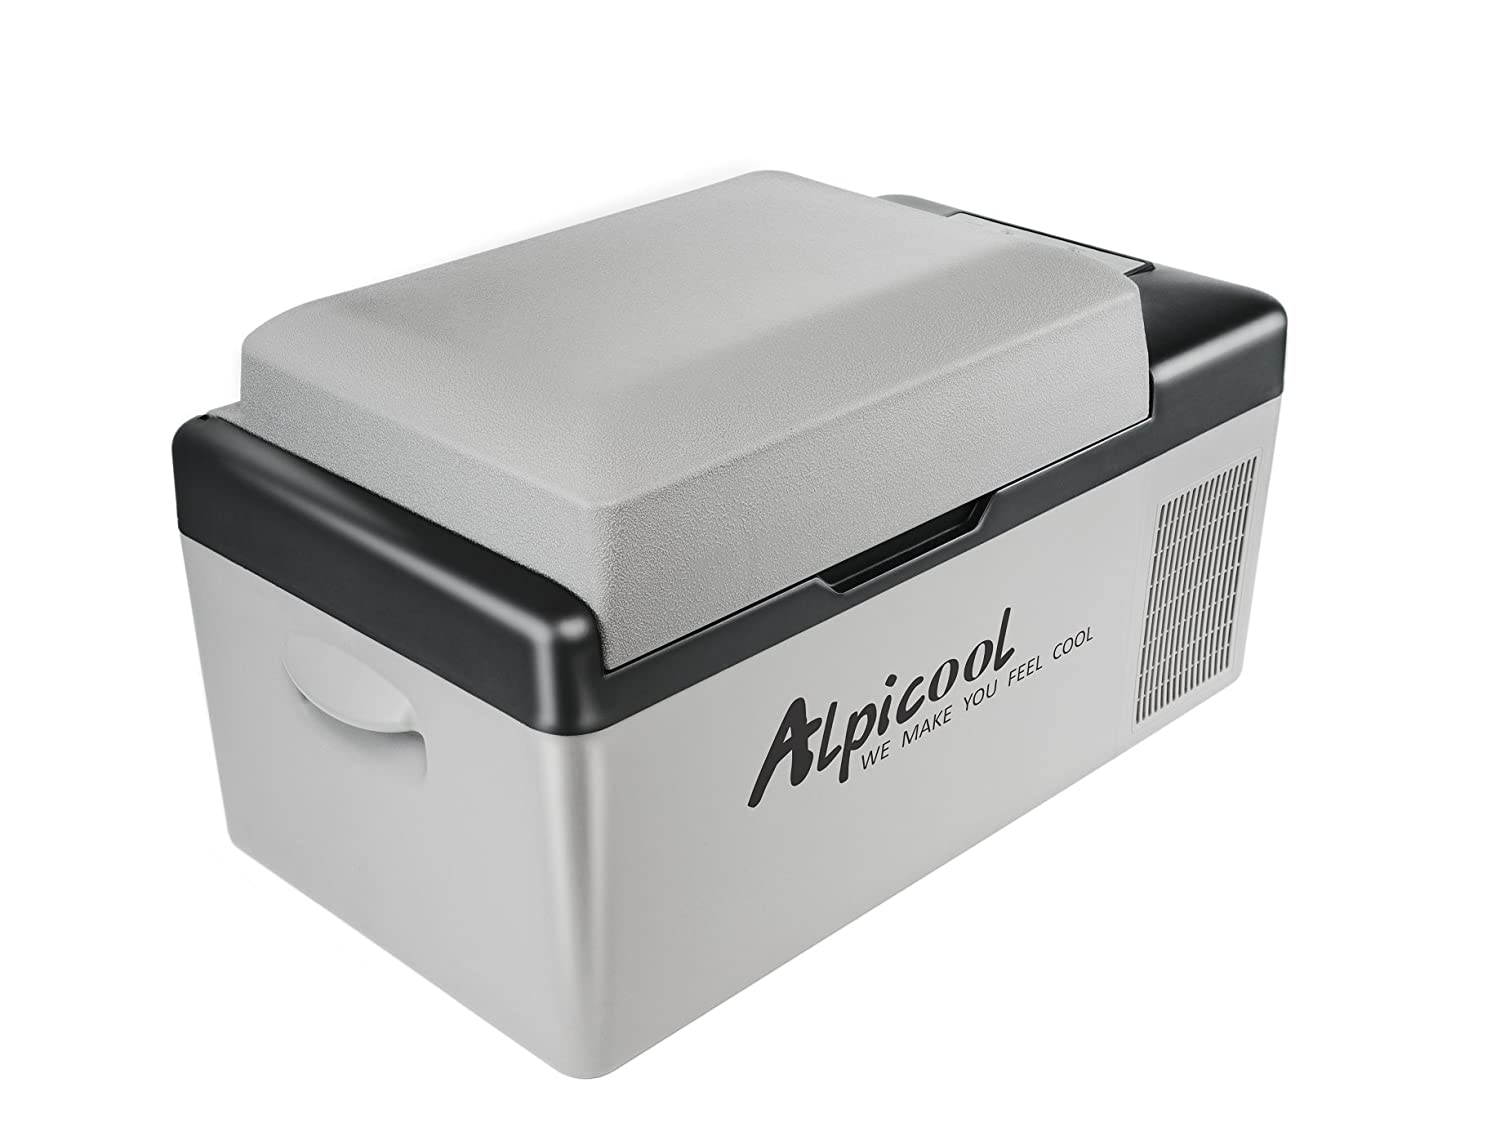 Alpicool C20 Portable Refrigerator 21 Quart(20 Liter) Vehicle, Car, Truck, RV, Boat, Mini Fridge Freezer for Driving, Travel, Fishing, Outdoor and Home use...